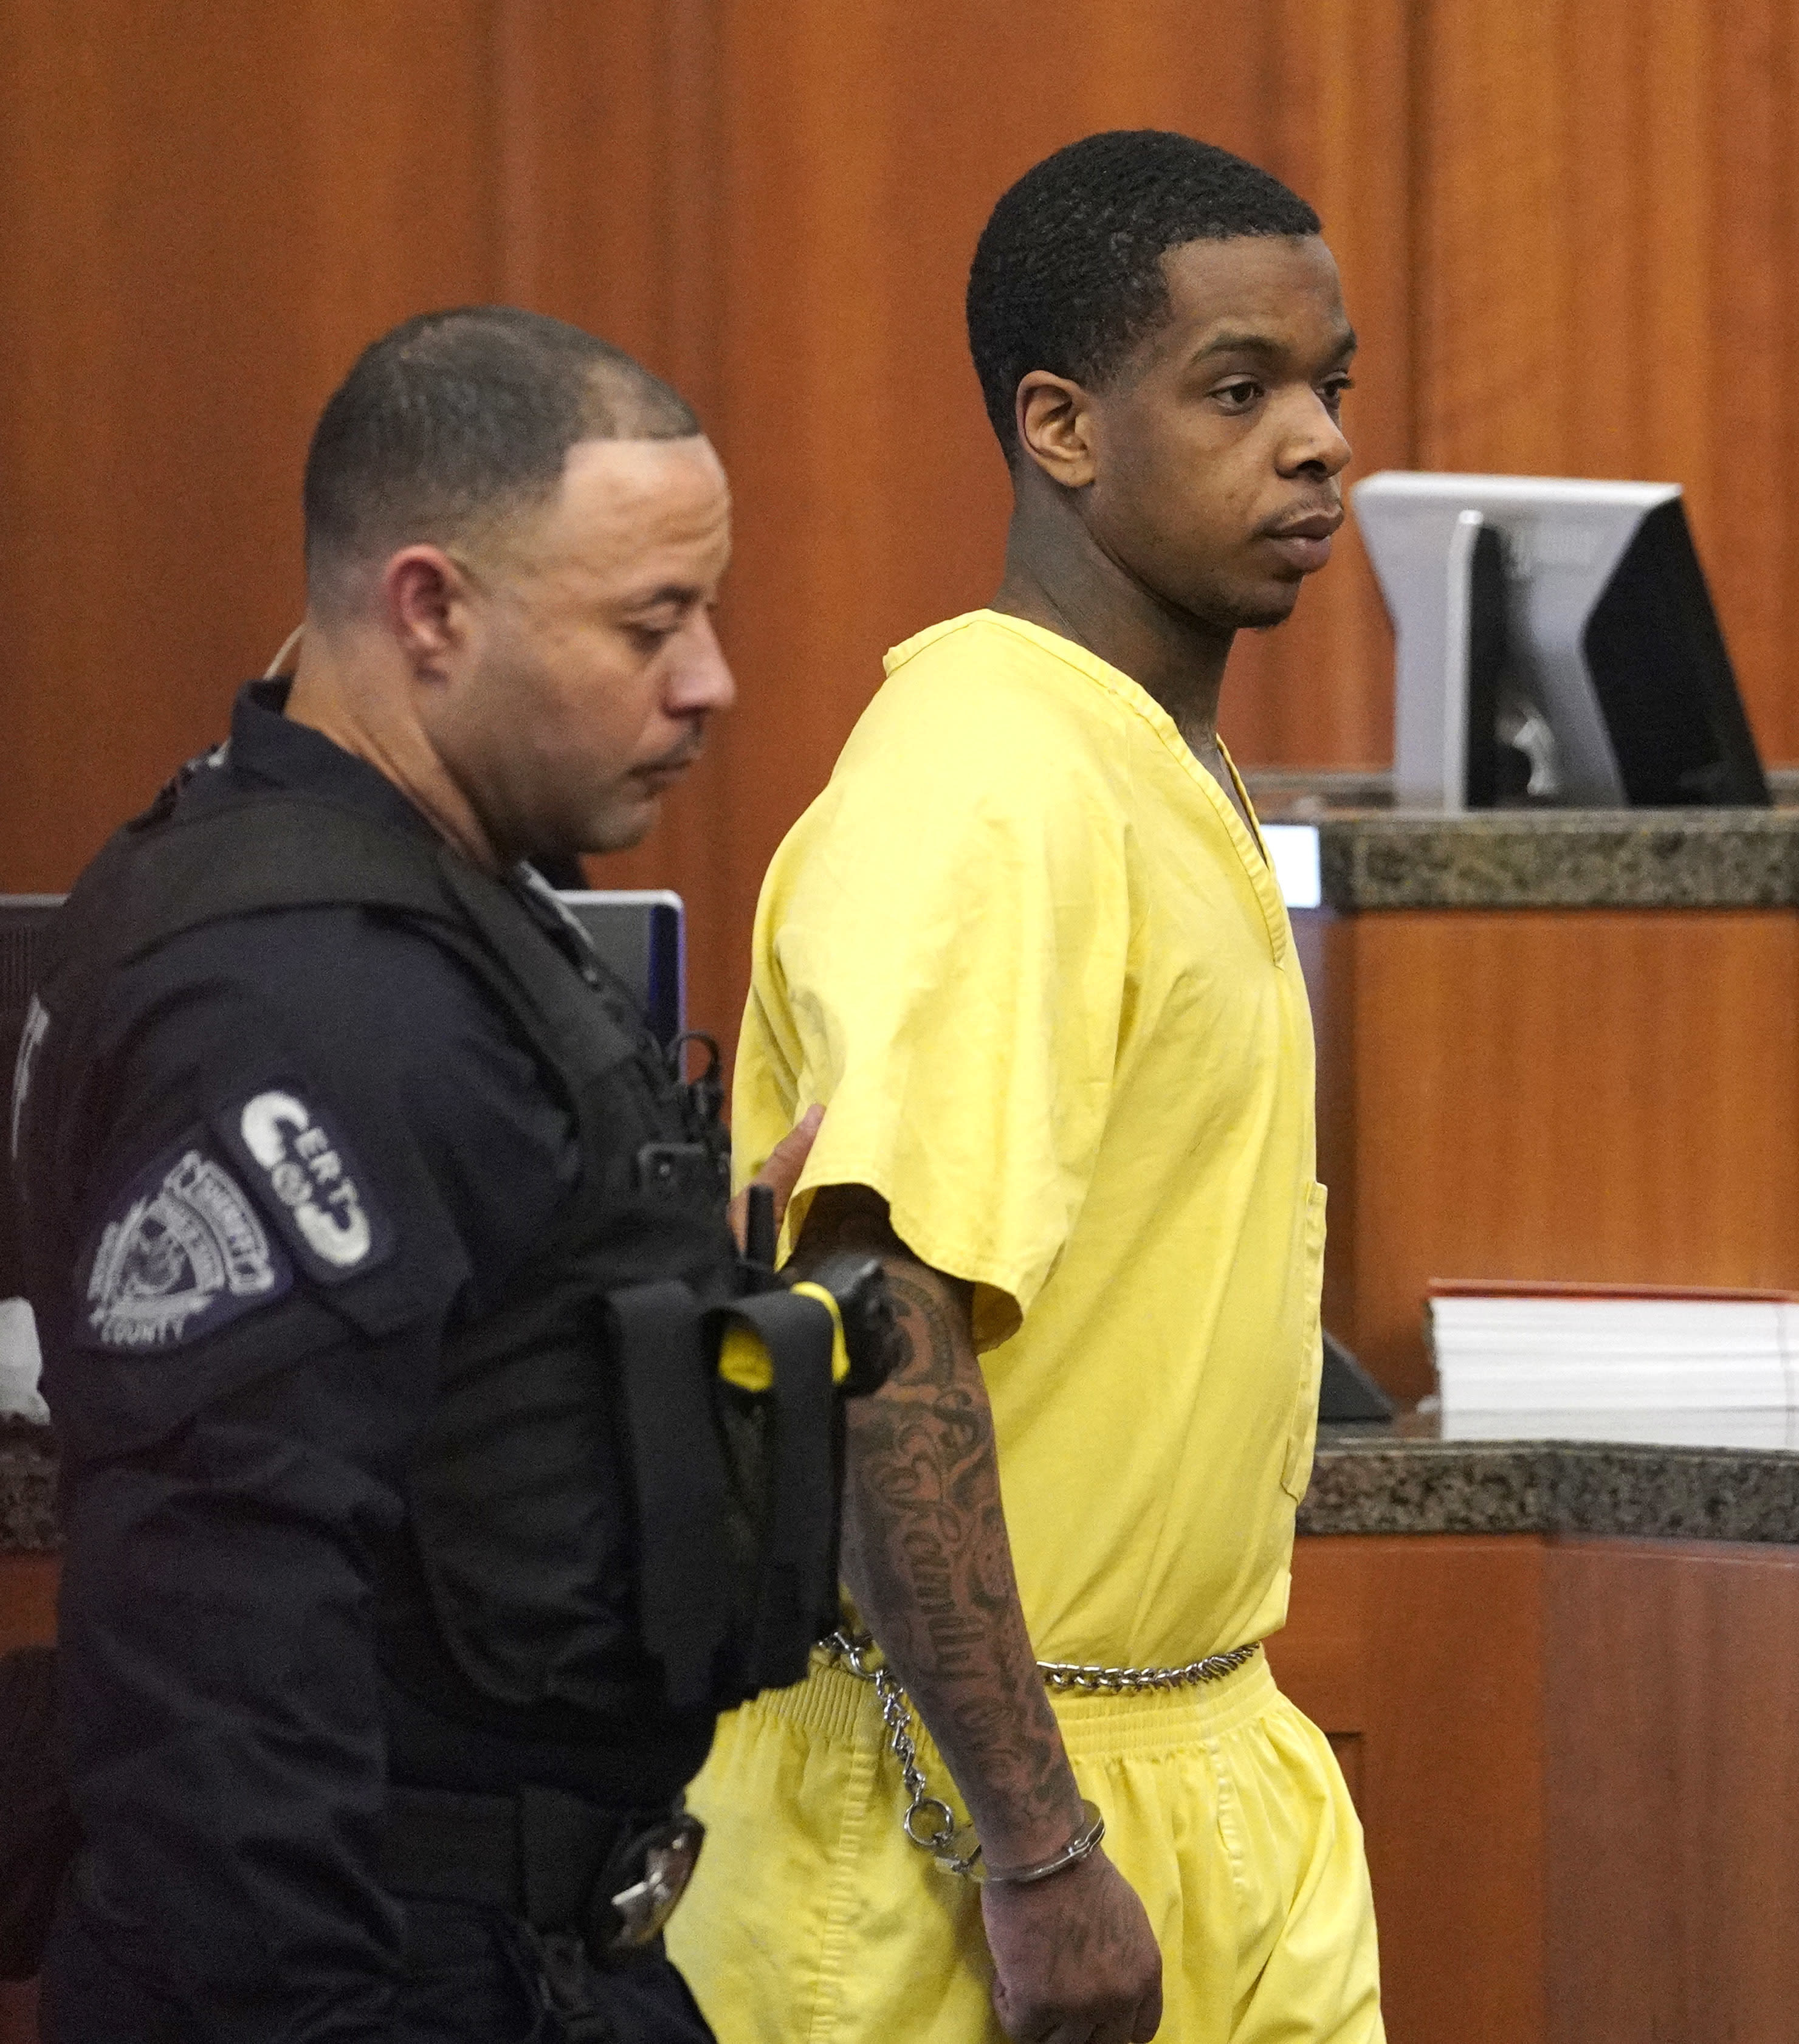 Larry D. Woodruffe, right, is escorted from the courtroom after a hearing Thursday, Jan. 10, 2019, in Houston. Woodruffe is charged with capital murder in the Dec. 30, 2018 slaying of 7-year-old Jazmine Barnes. (AP Photo/David J. Phillip)